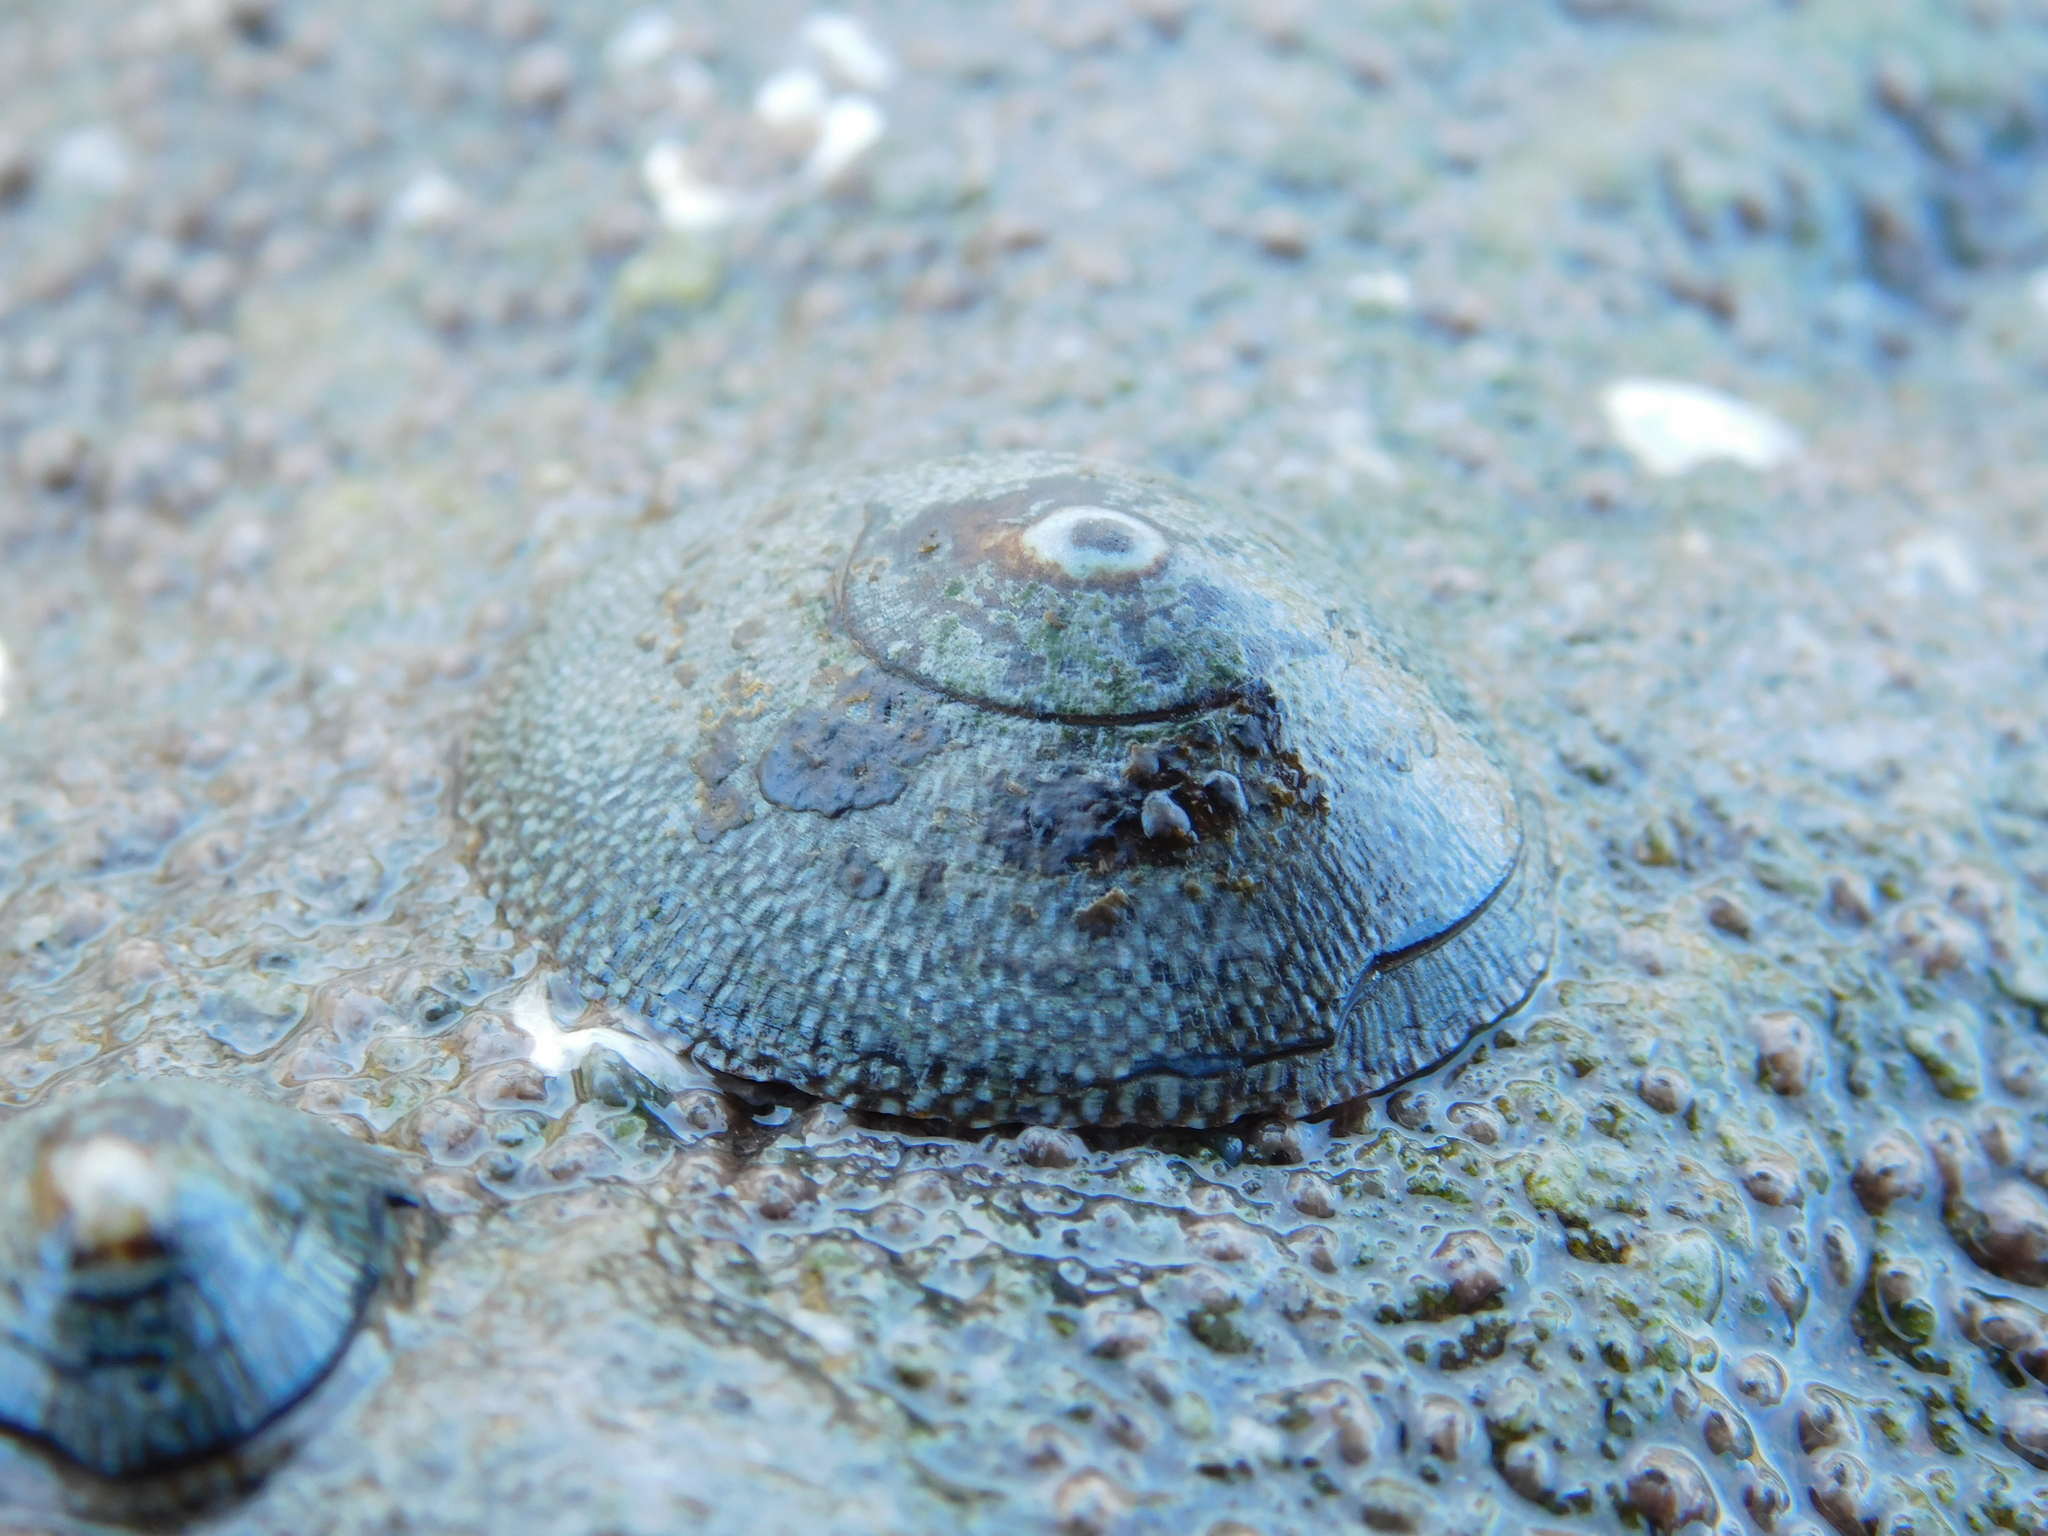 Image of fenestrate limpet